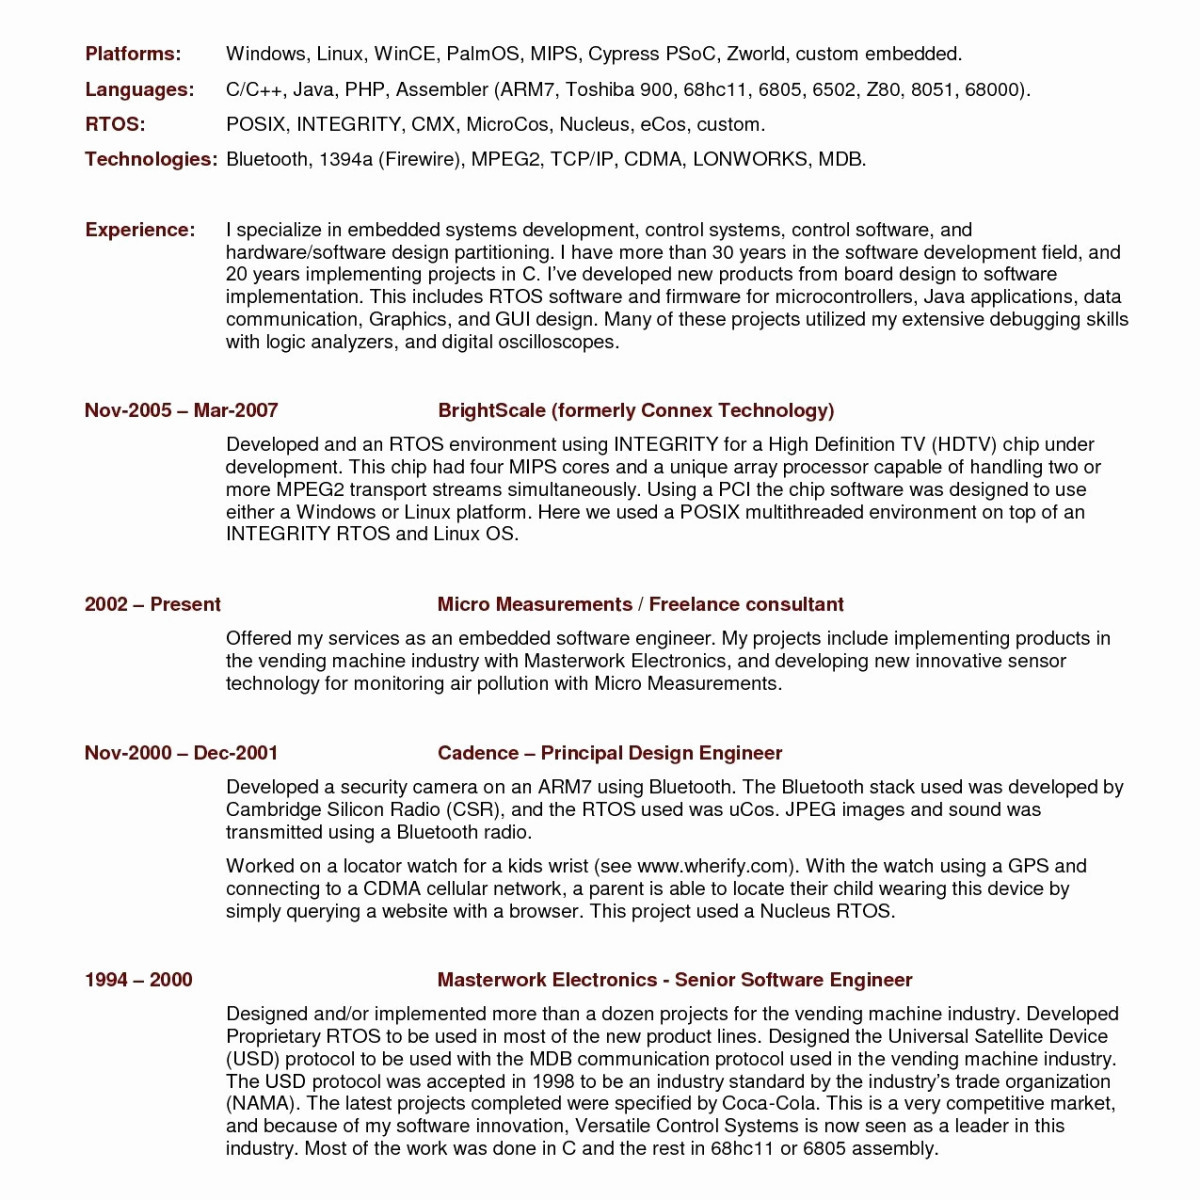 Free Pdf Resume Builder - How to Create A Free Resume Luxury Free Resume Pdf Fresh Free Resume